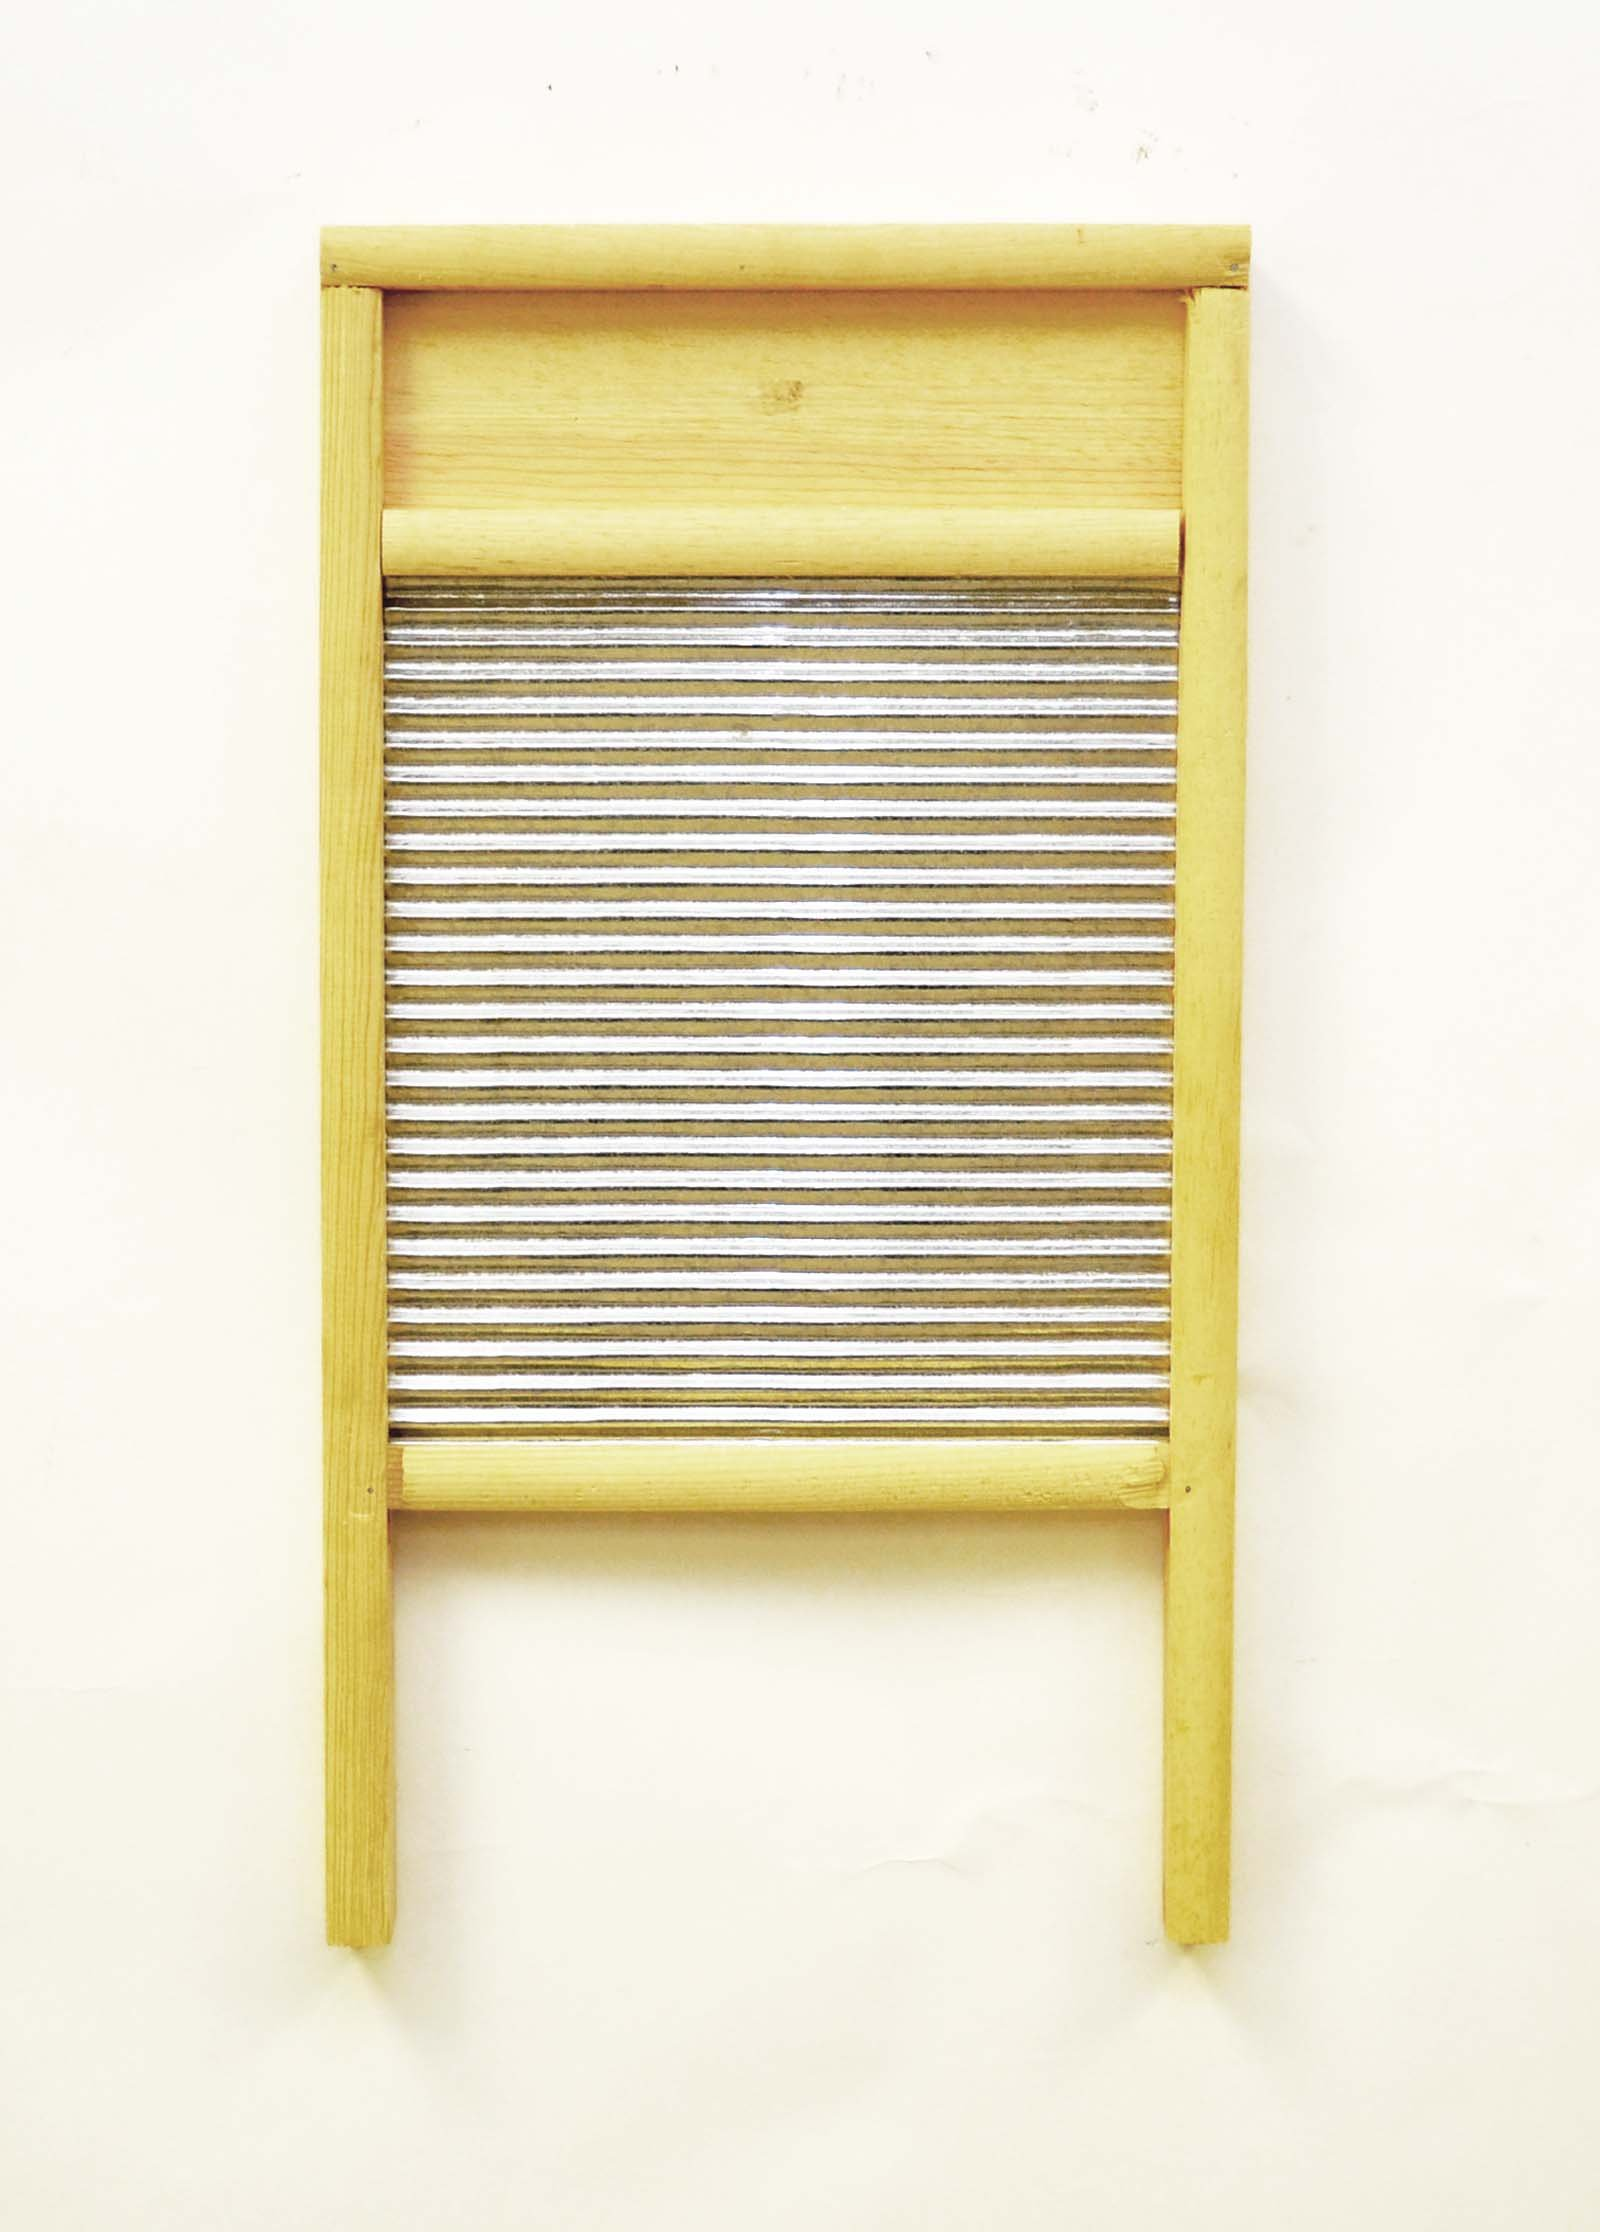 Large Washboard with Tin-23.5 Inches High X 12.5 Inches Wide by Laredo Import